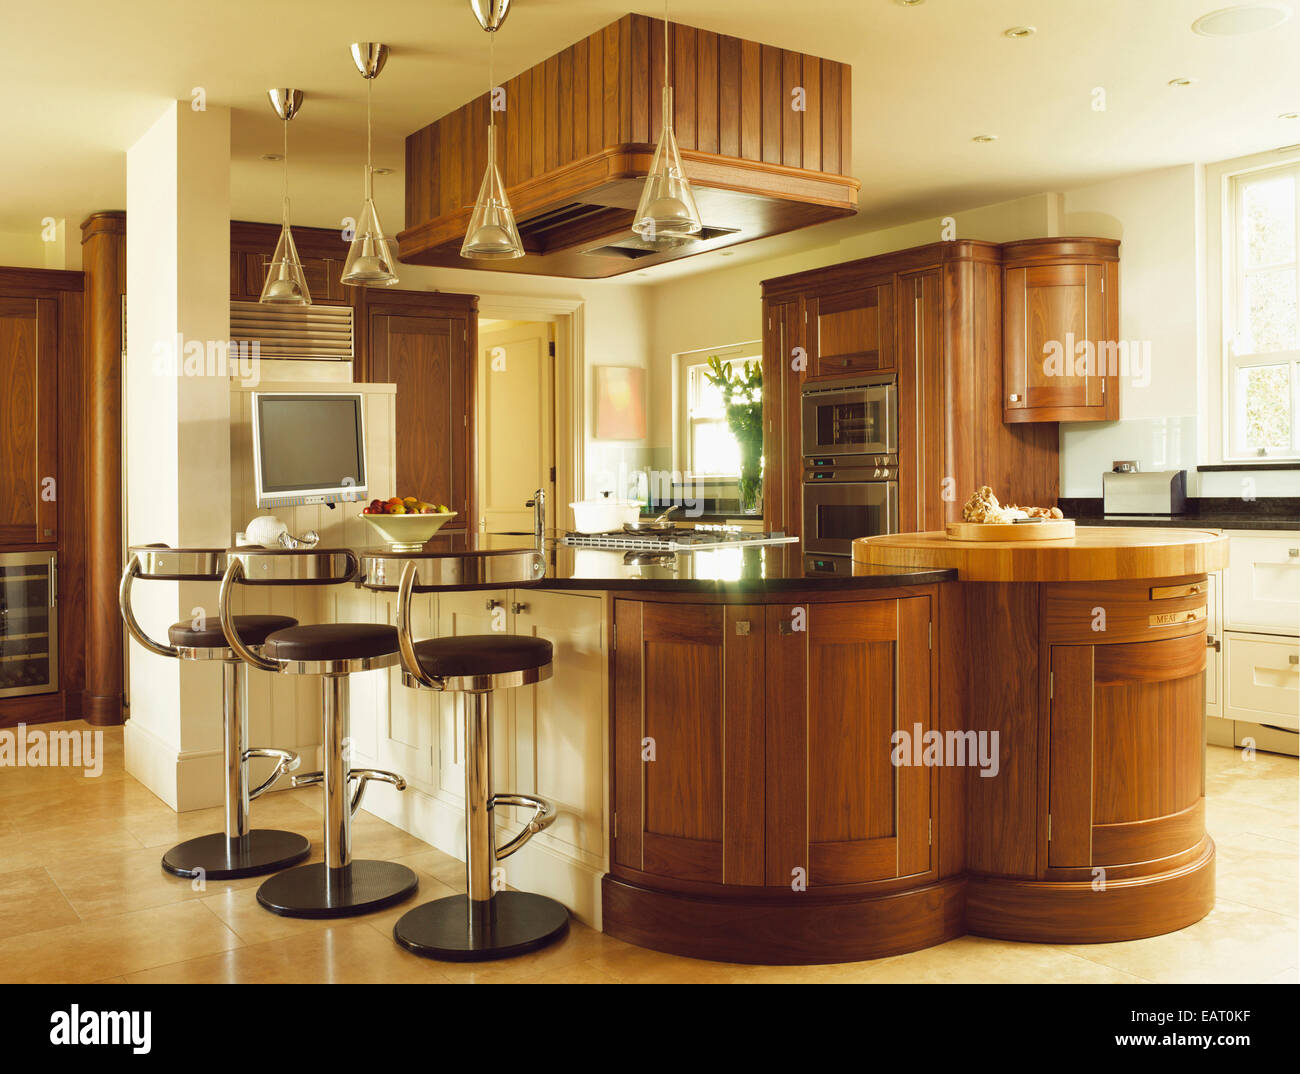 Bar stools at breakfast bar with wooden units in contemporary ...